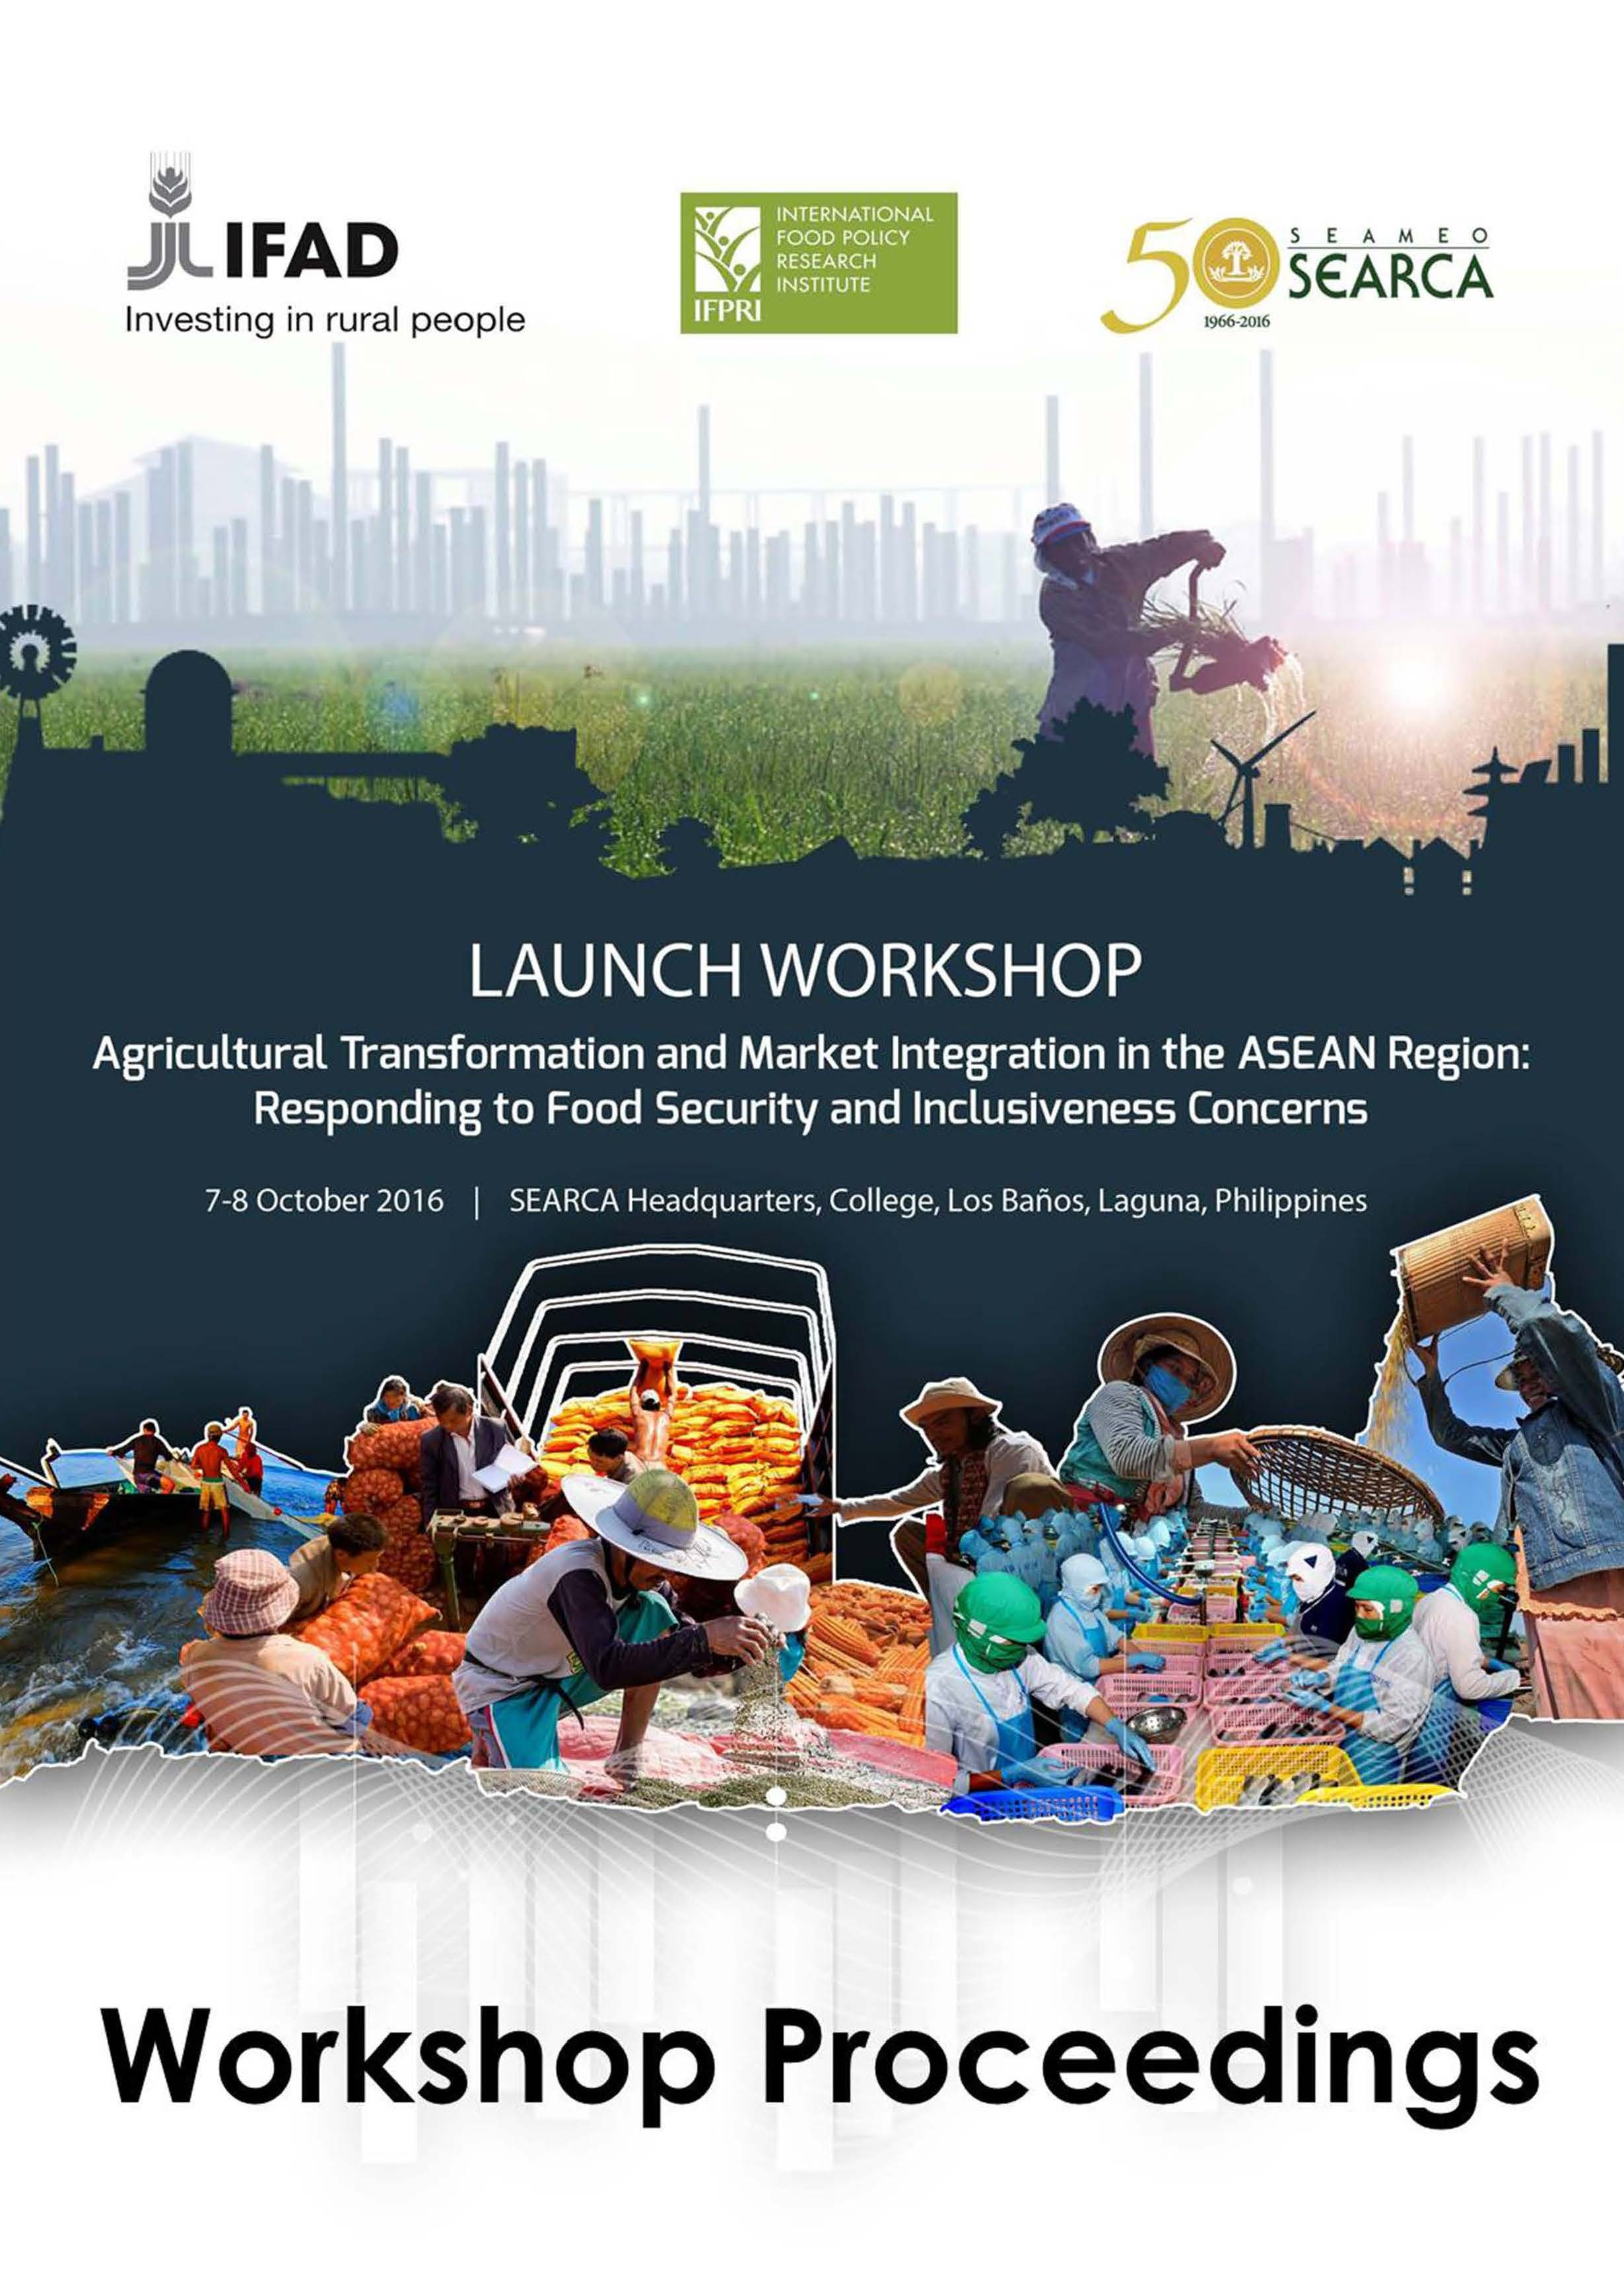 Proceedings of the Launch Workshop of the Agricultural Transformation and Market Integration in the ASEAN Region: Responding to Food Security and Inclusiveness Concerns